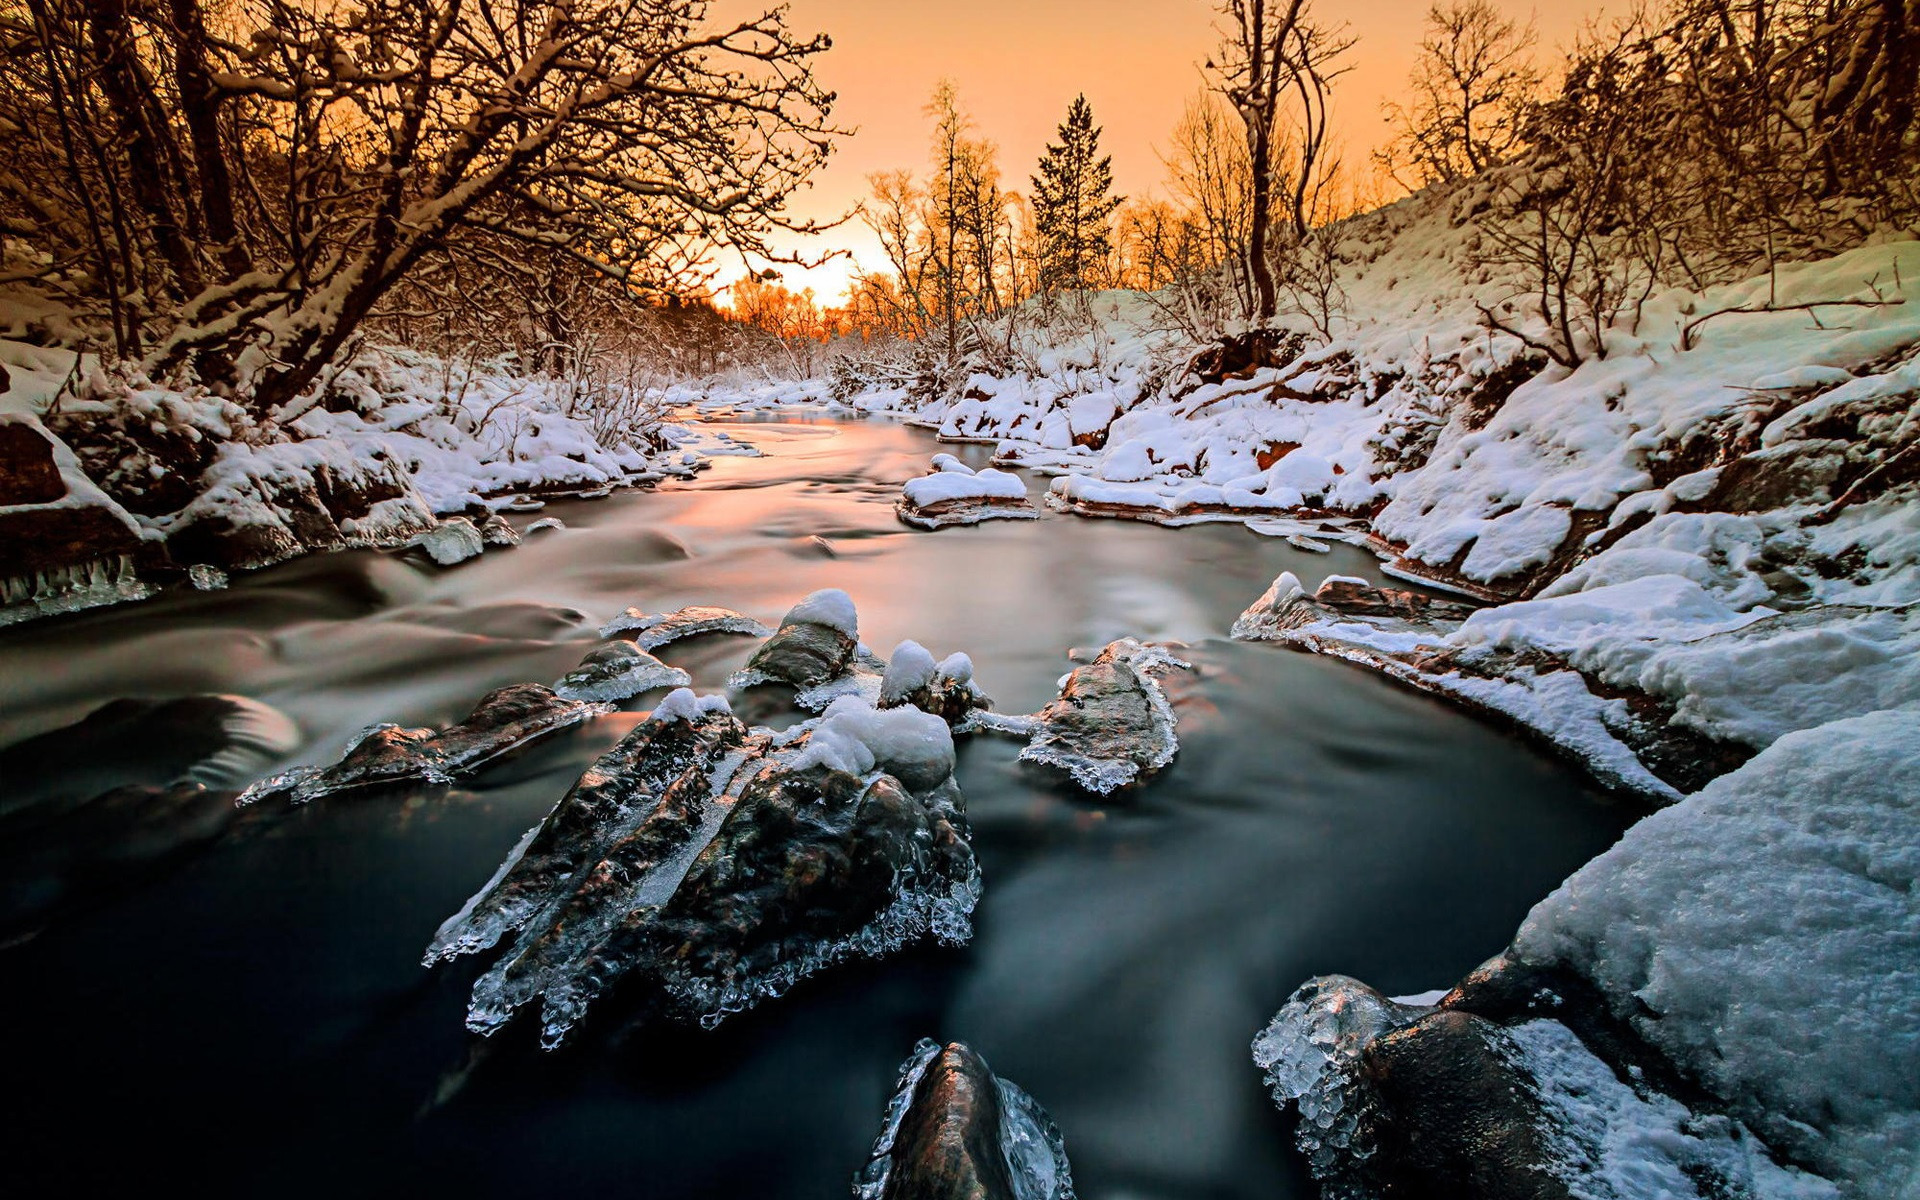 Pin Fondos Montana Nevada 1440x900 Widescreen Wallpapers: Wallpaper Norway, Forest, Trees, River, Snow, Ice, Winter